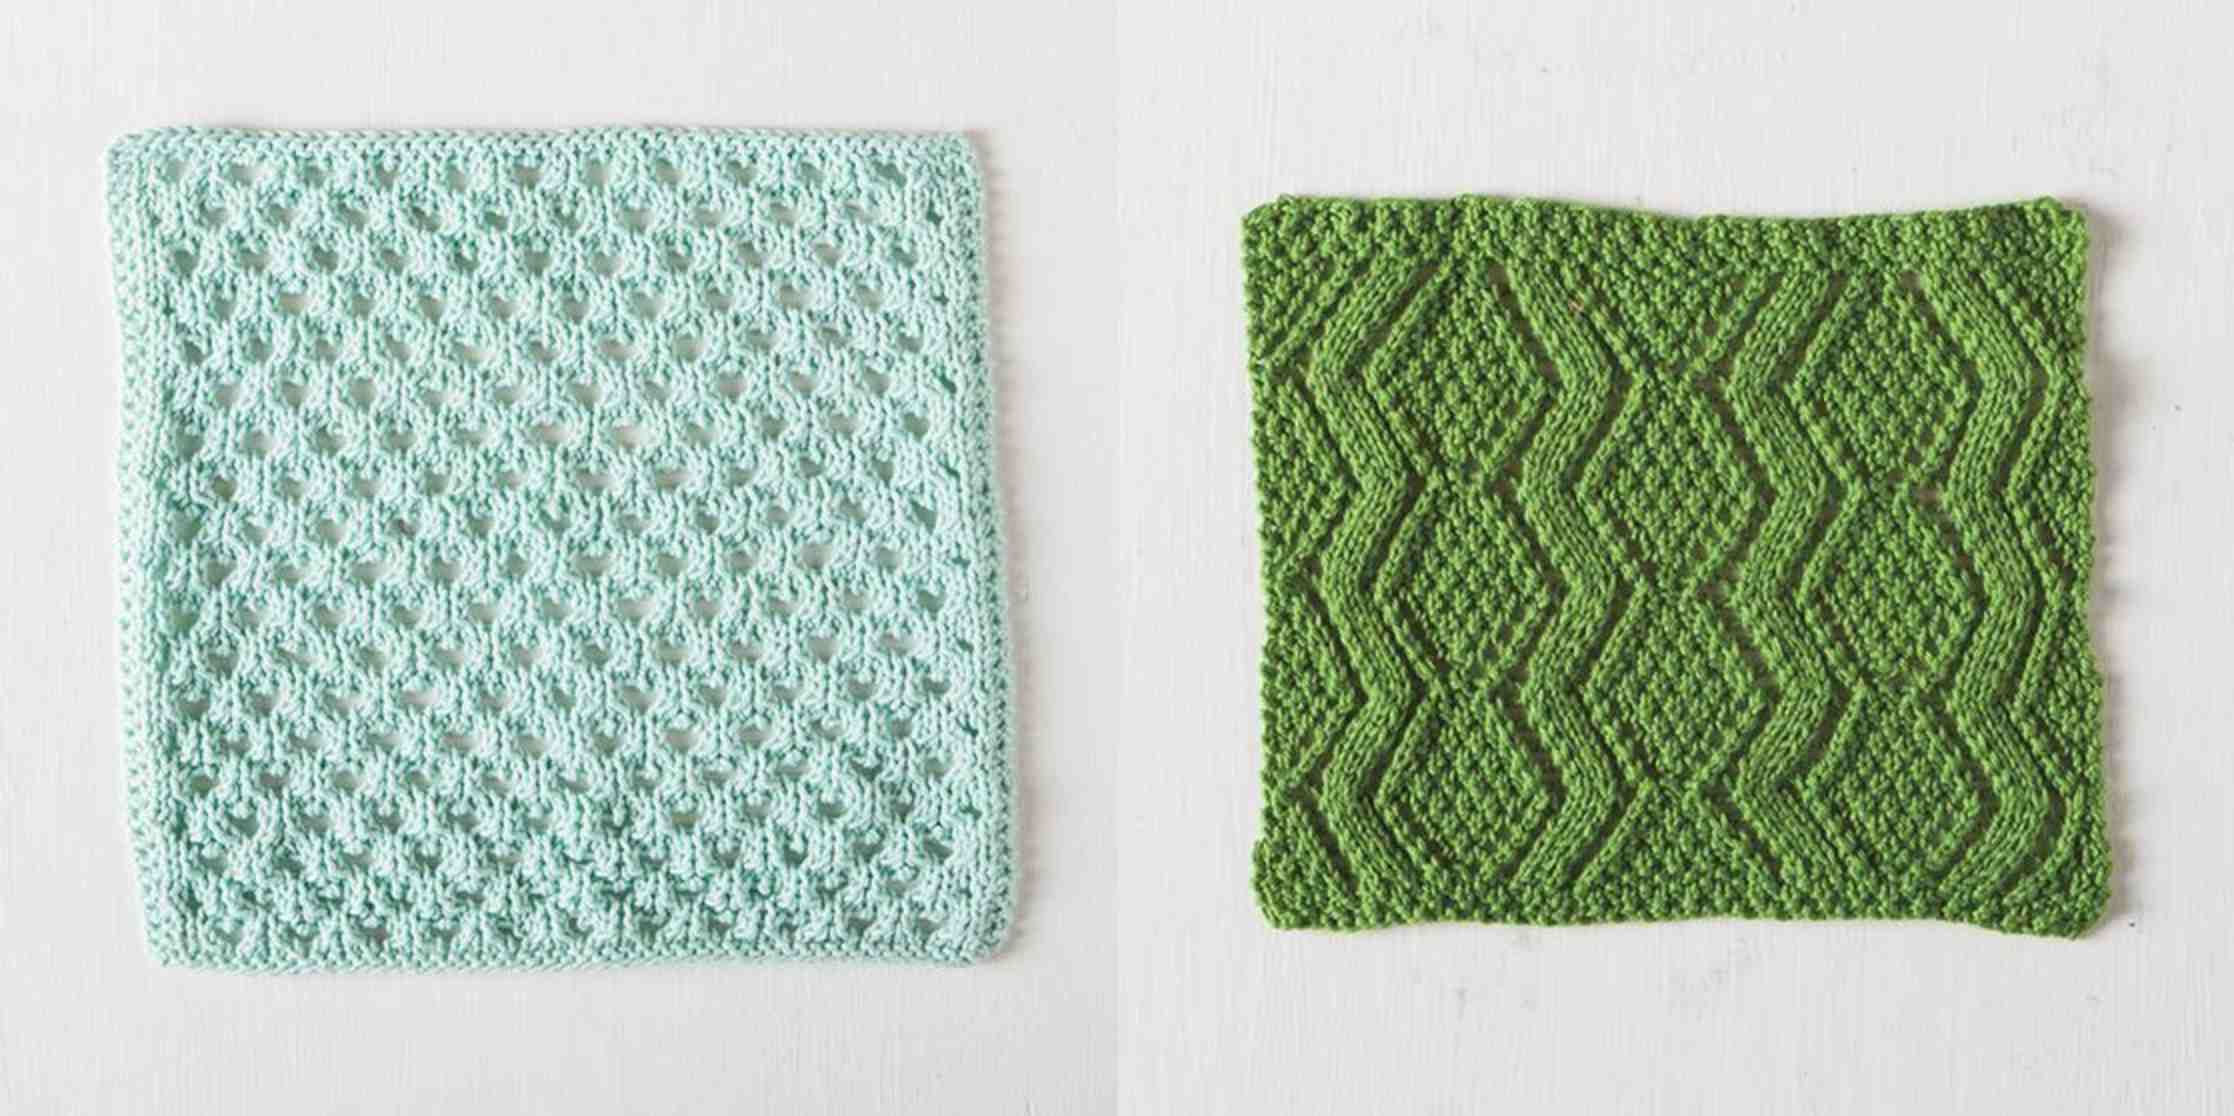 Dishcloth Knitting Patterns New Design Ideas